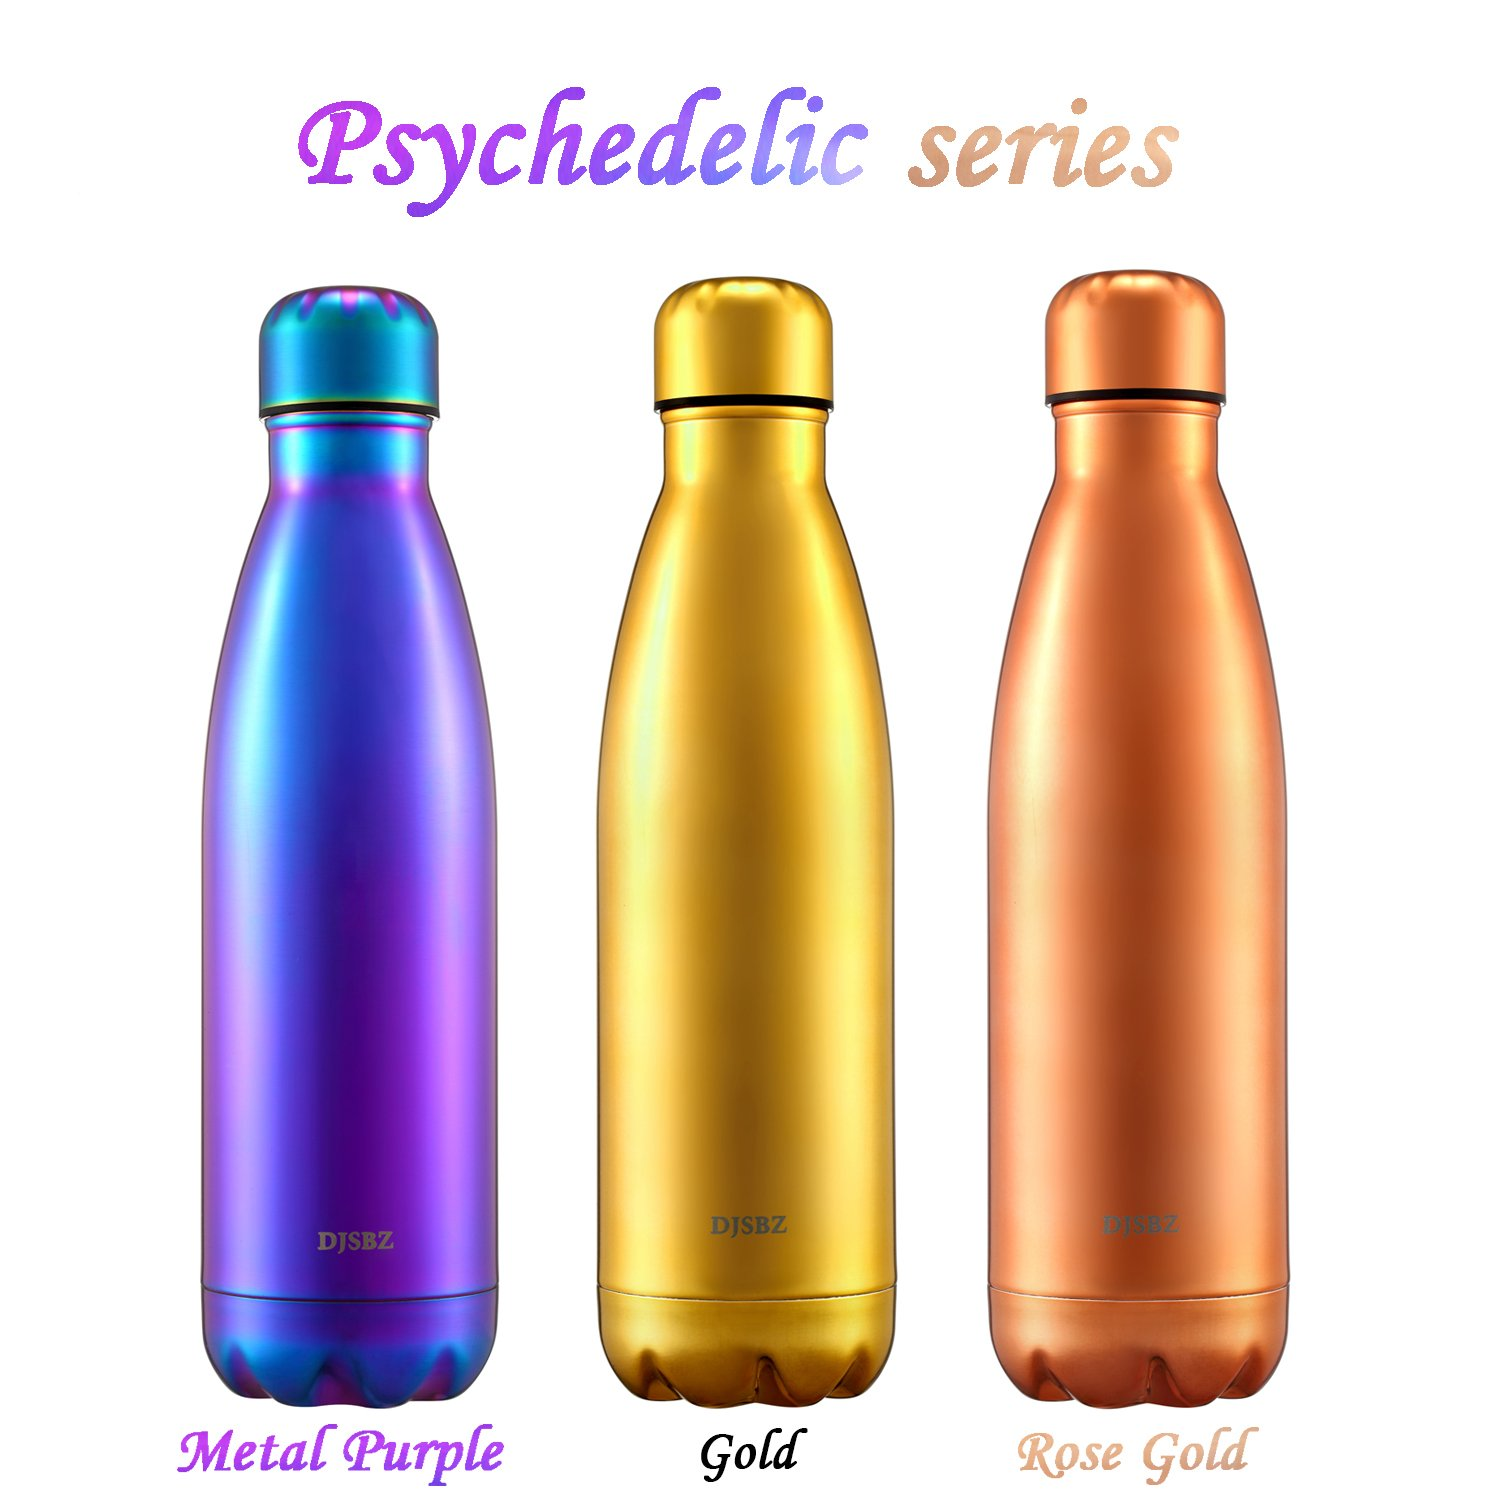 DJSBZ 17oz Cola-Shape Water Bottle 17 Oz Leak-Proof Keep Hot /& Cold 500 ml Metal Purple Personalized Texture,Gift Box Packaging Double Walled Vacuum 18//8 Stainless Steel 500 ml